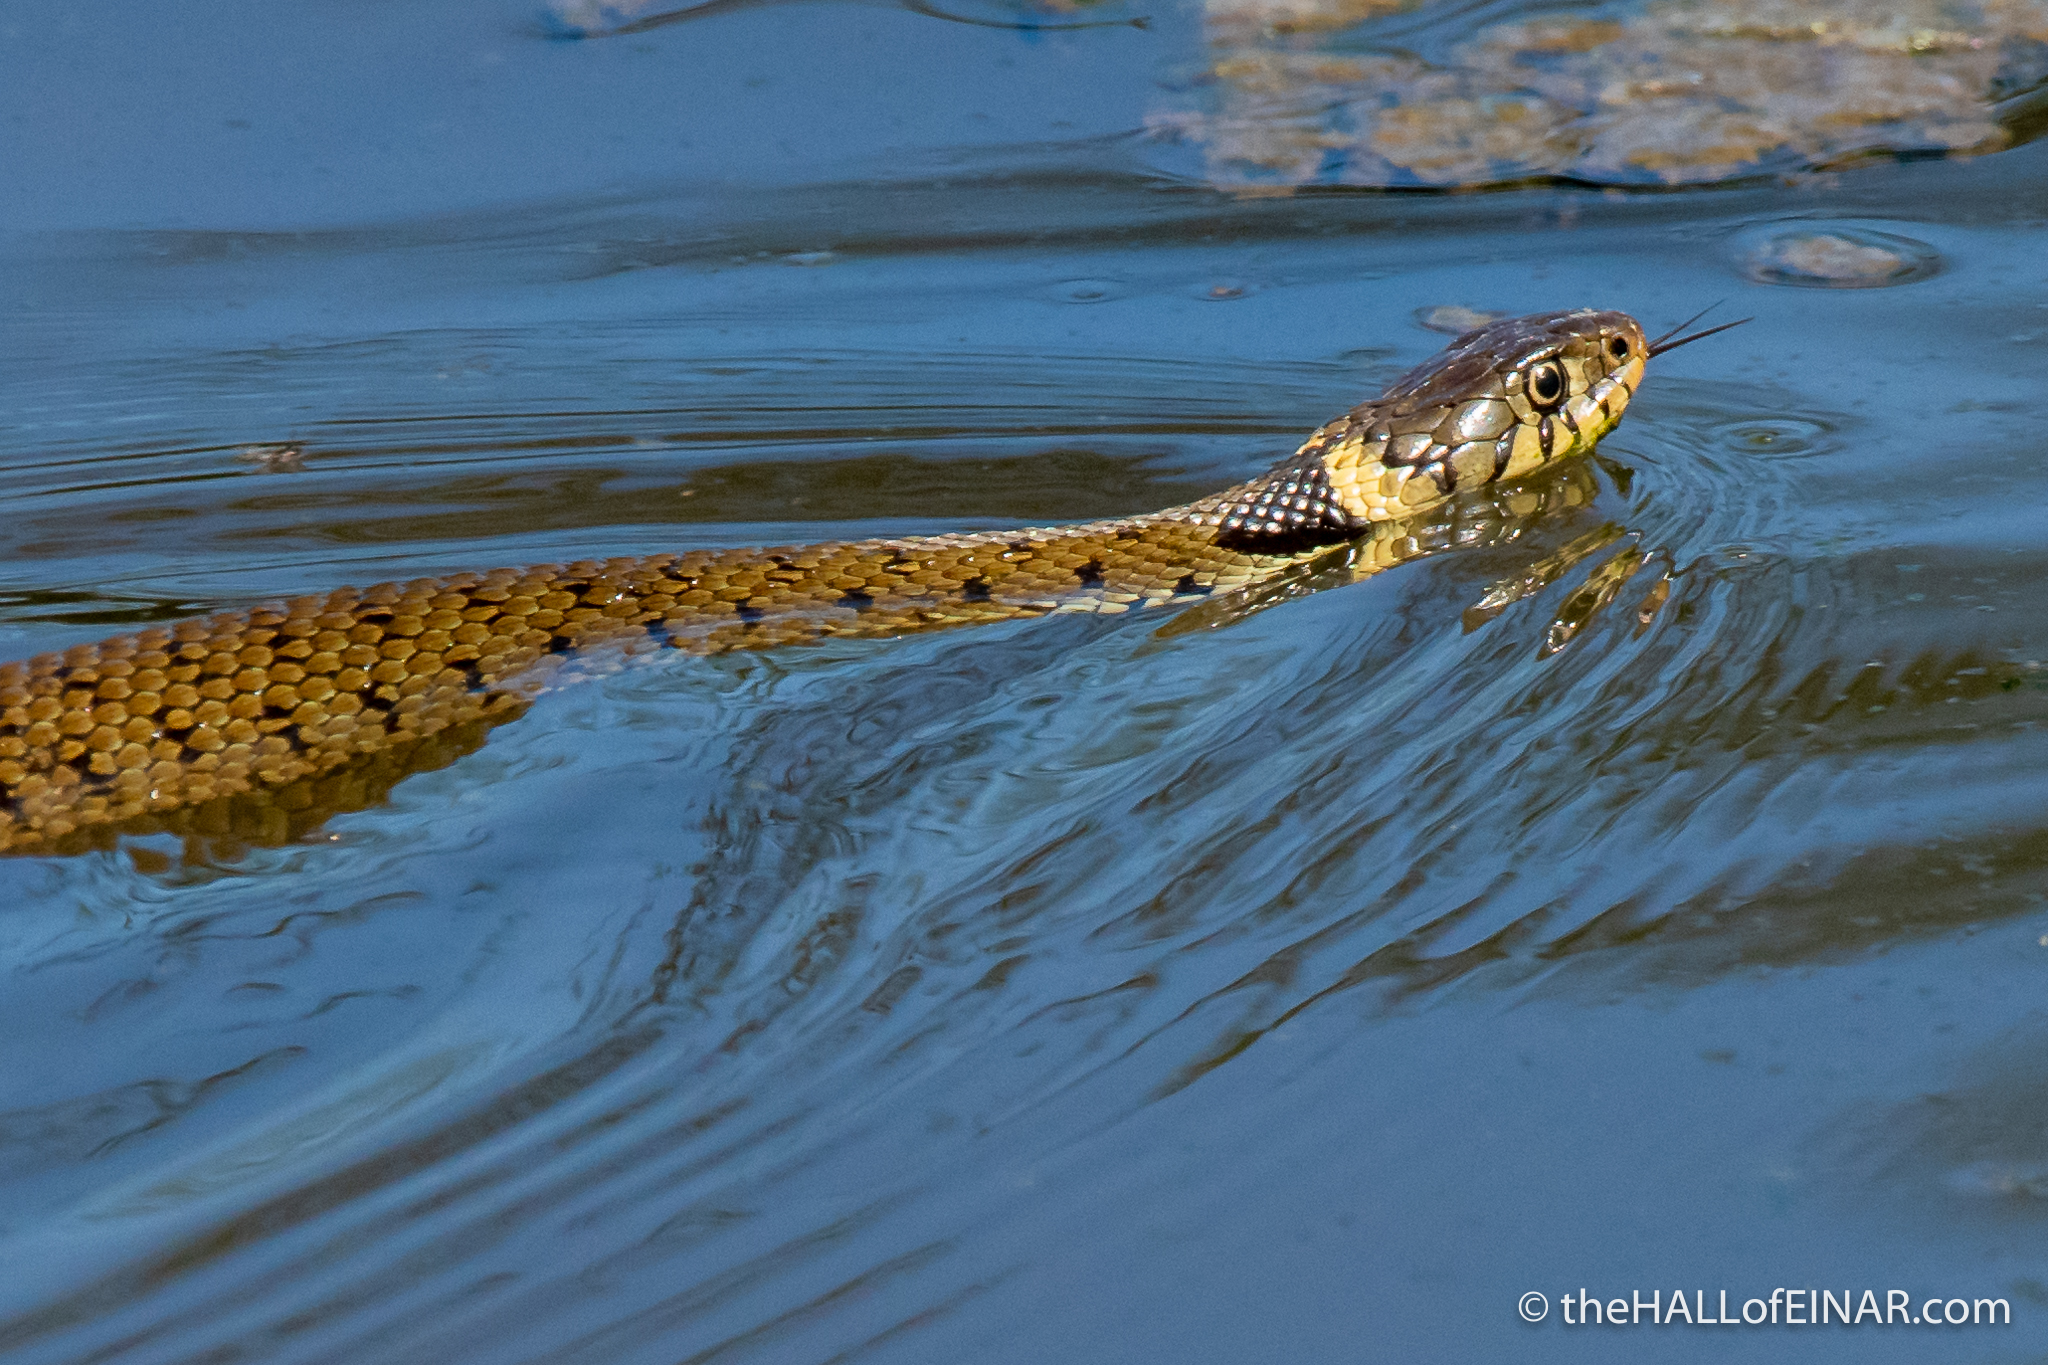 Grass Snake - The Hall of Einar - photograph (c) David Bailey (not the)